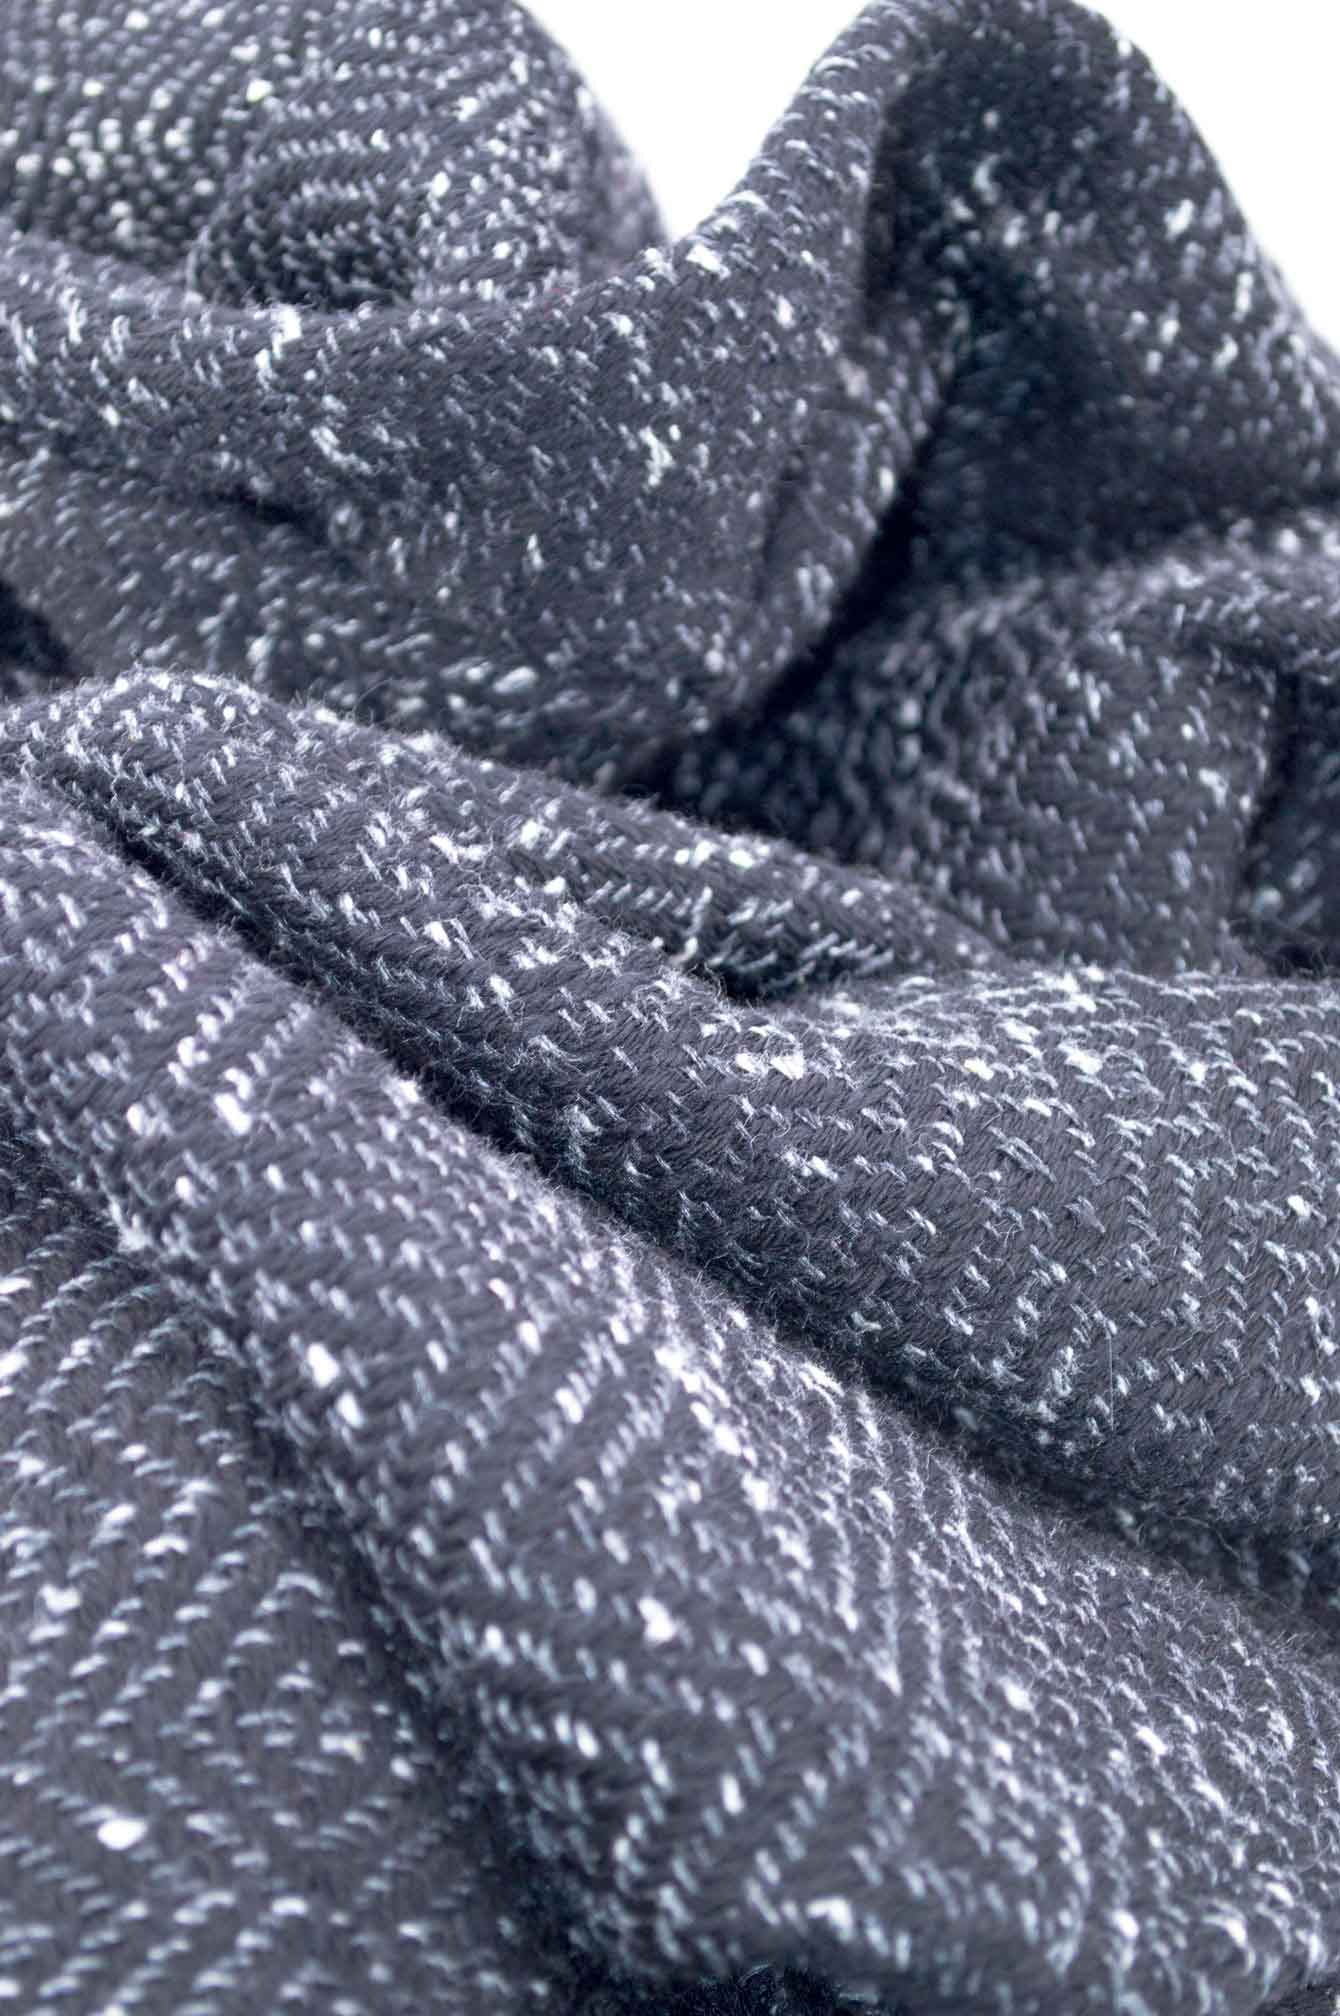 Throw blanketcreated with dark gray fleckedsilk floss,black wool.Succession of lozenge patterns.  Technique:Throw blanket hand-woven in a traditional way on non-mechanical looms in the 7th arrondissement of Paris in France.  Finishes: Right edge. Double stitching.4 pompons 11 cm long.  Size: 140 x 180 cm.  Single piece / 1 copy only.